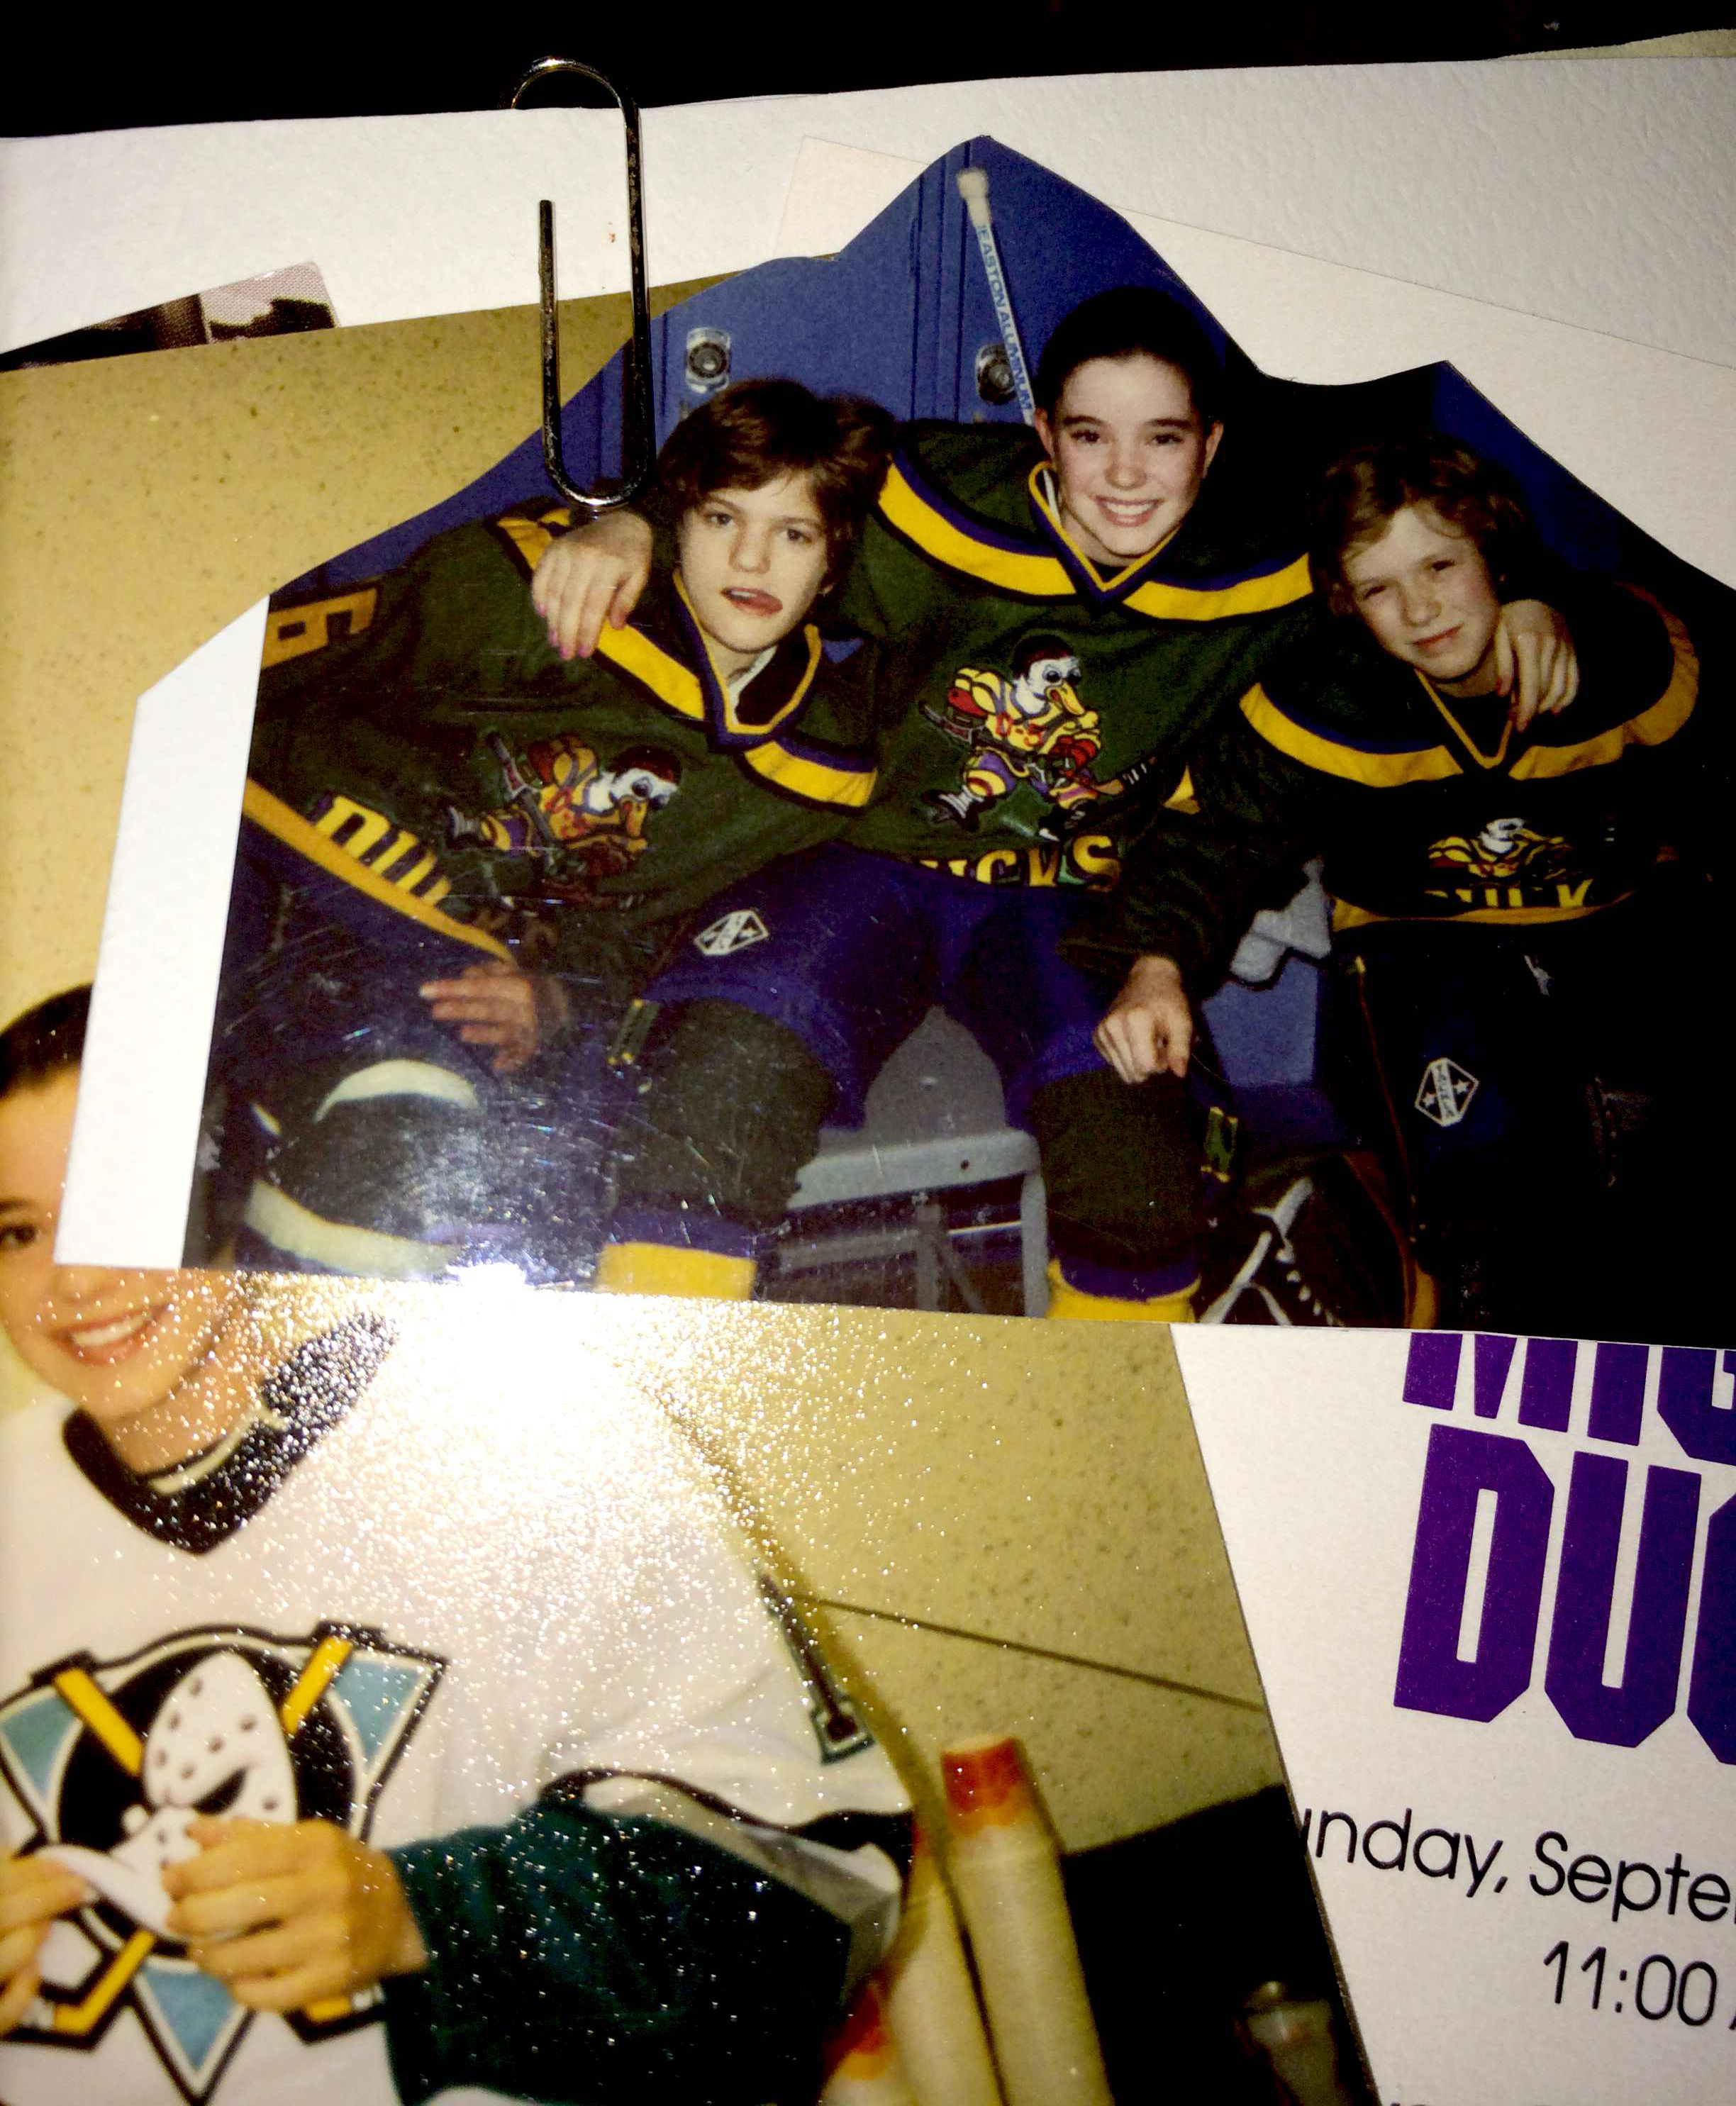 Joshua Jackson (Charlie Conway), Marguerite Moreau (Connie Moreau) and Garette Henson (Guy Germaine) wearing the Mighty Ducks uniforms from the first movie.